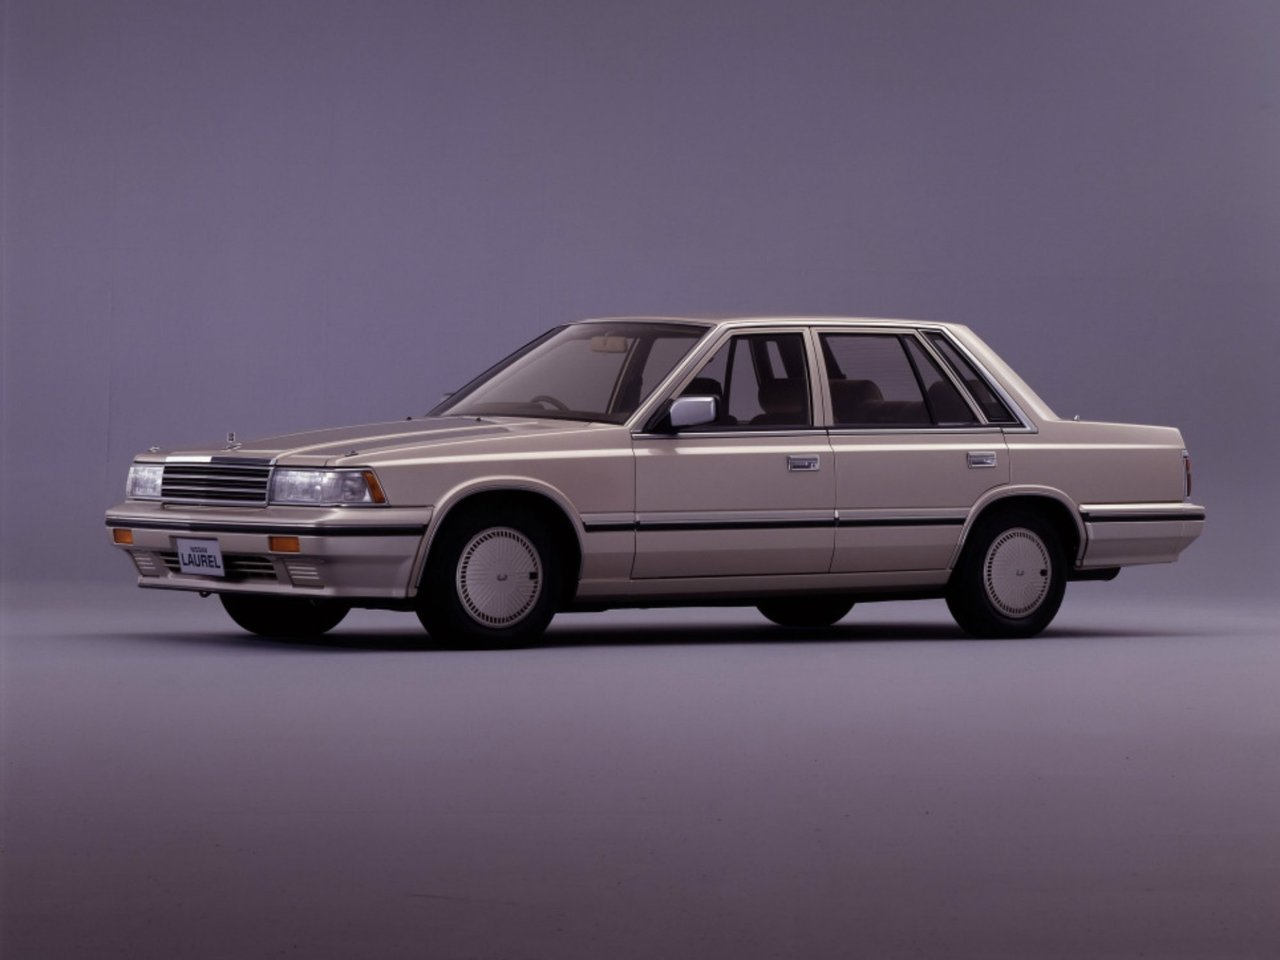 Nissan Laurel V